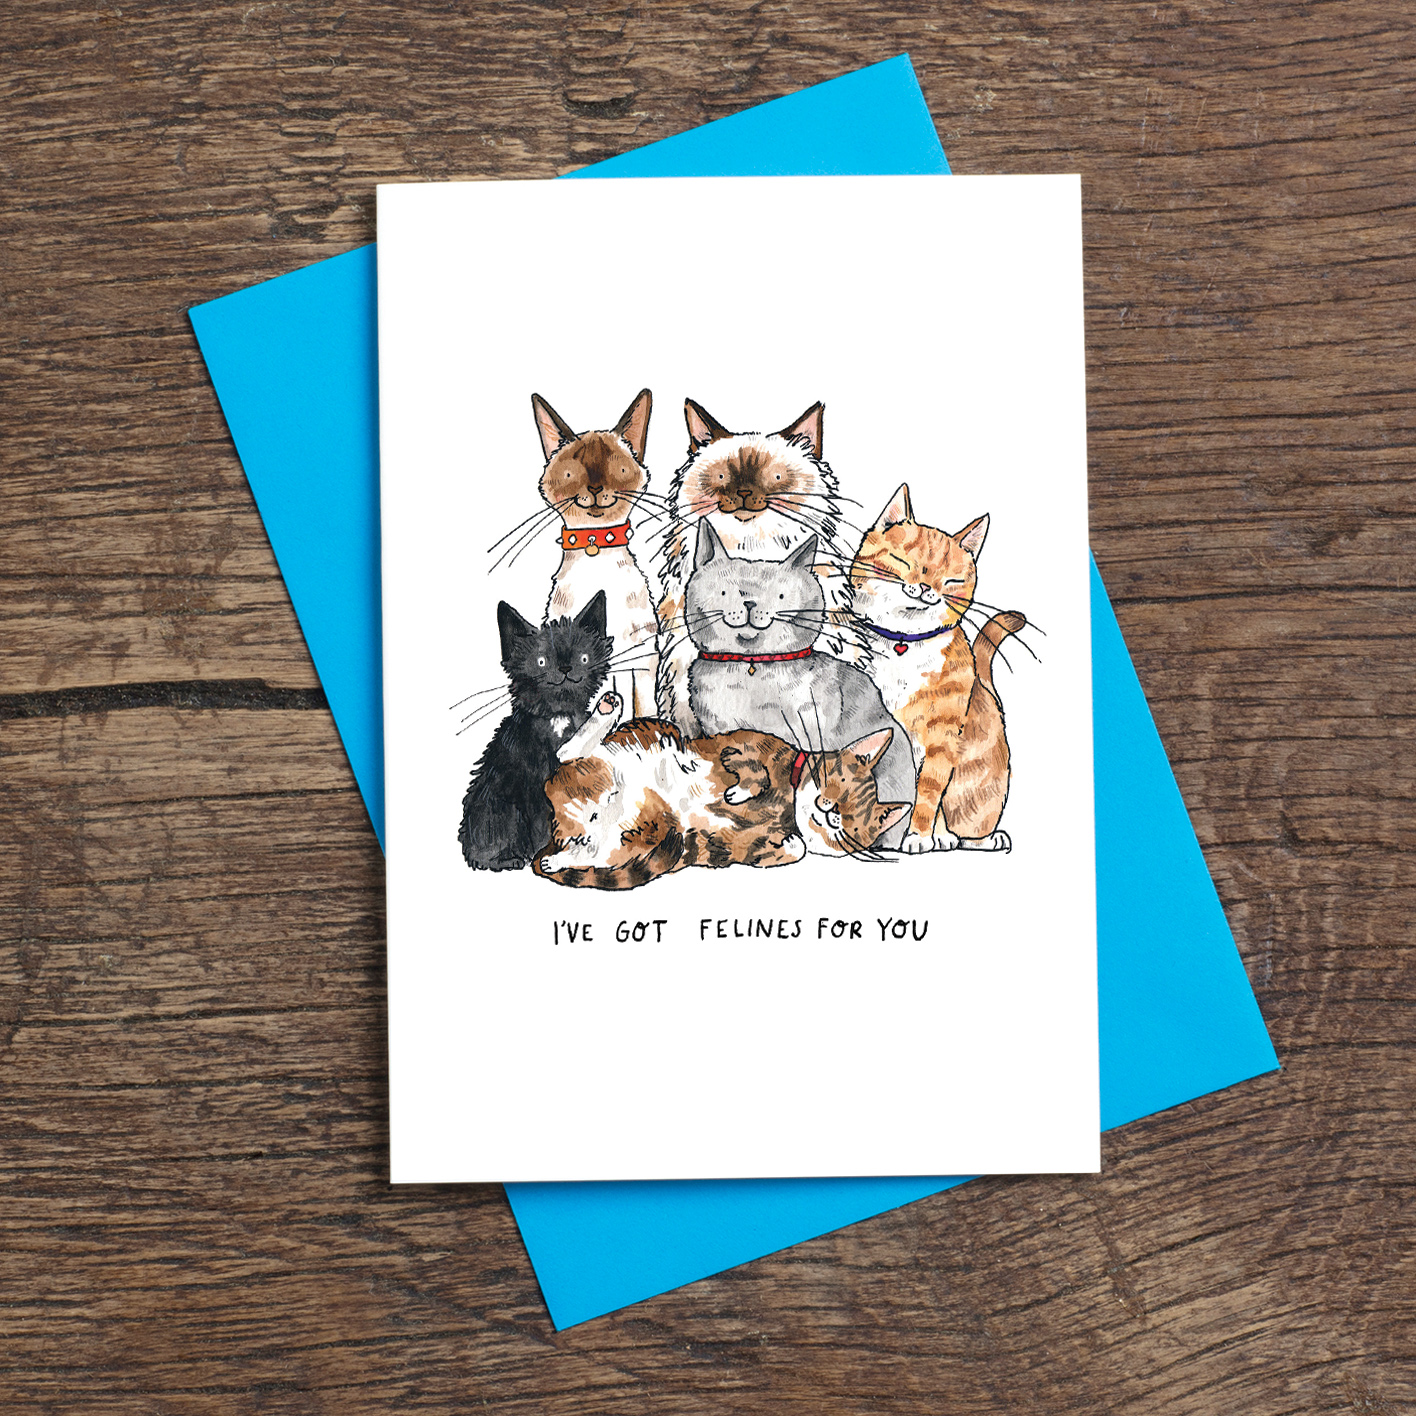 Felines-for-you_-Cat-greetings-card-for-anniversaries_SM72_FLC